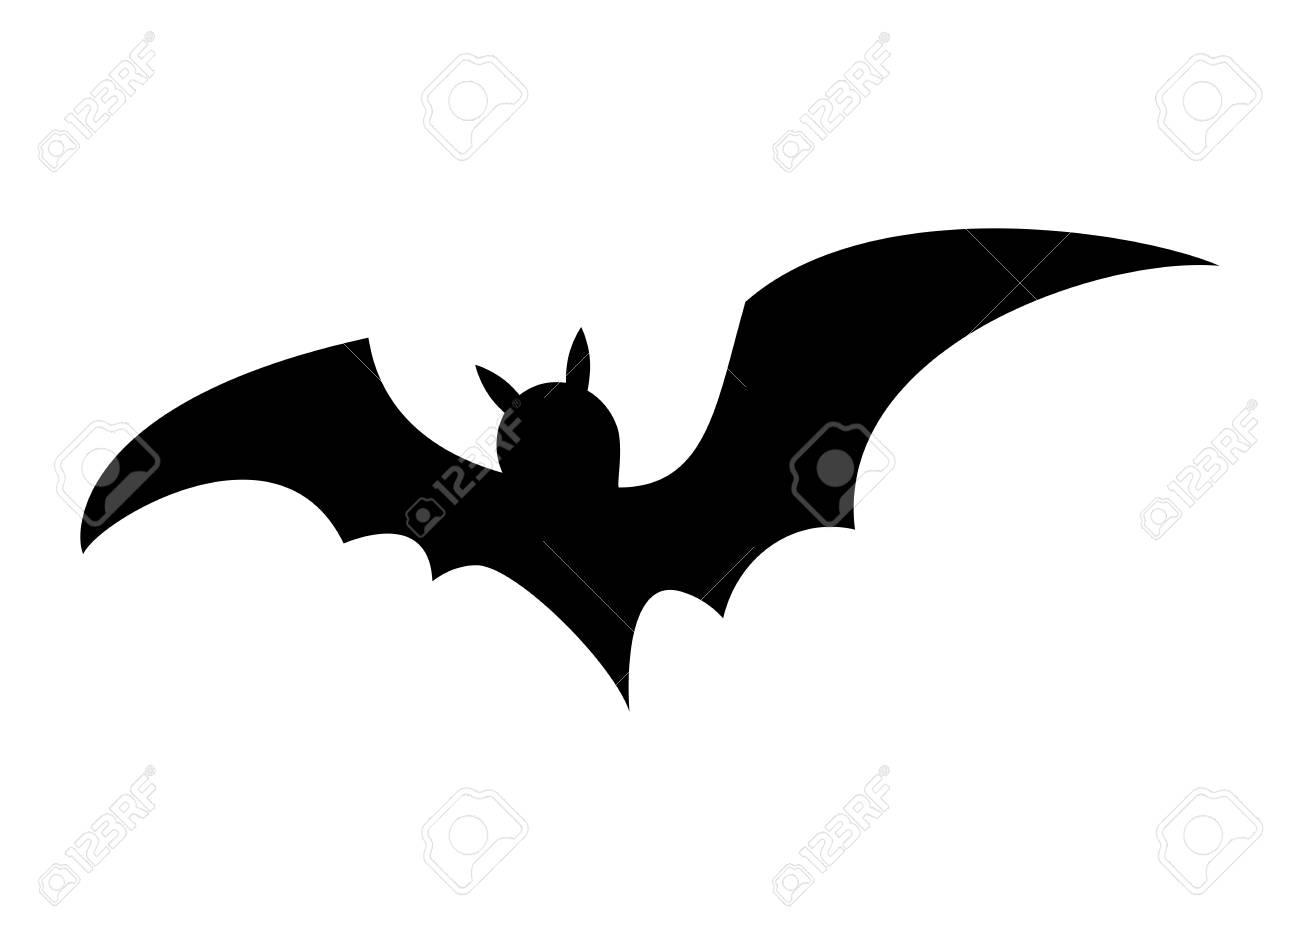 a halloween bat silhouette vector design isolated on white background stock vector 88617227